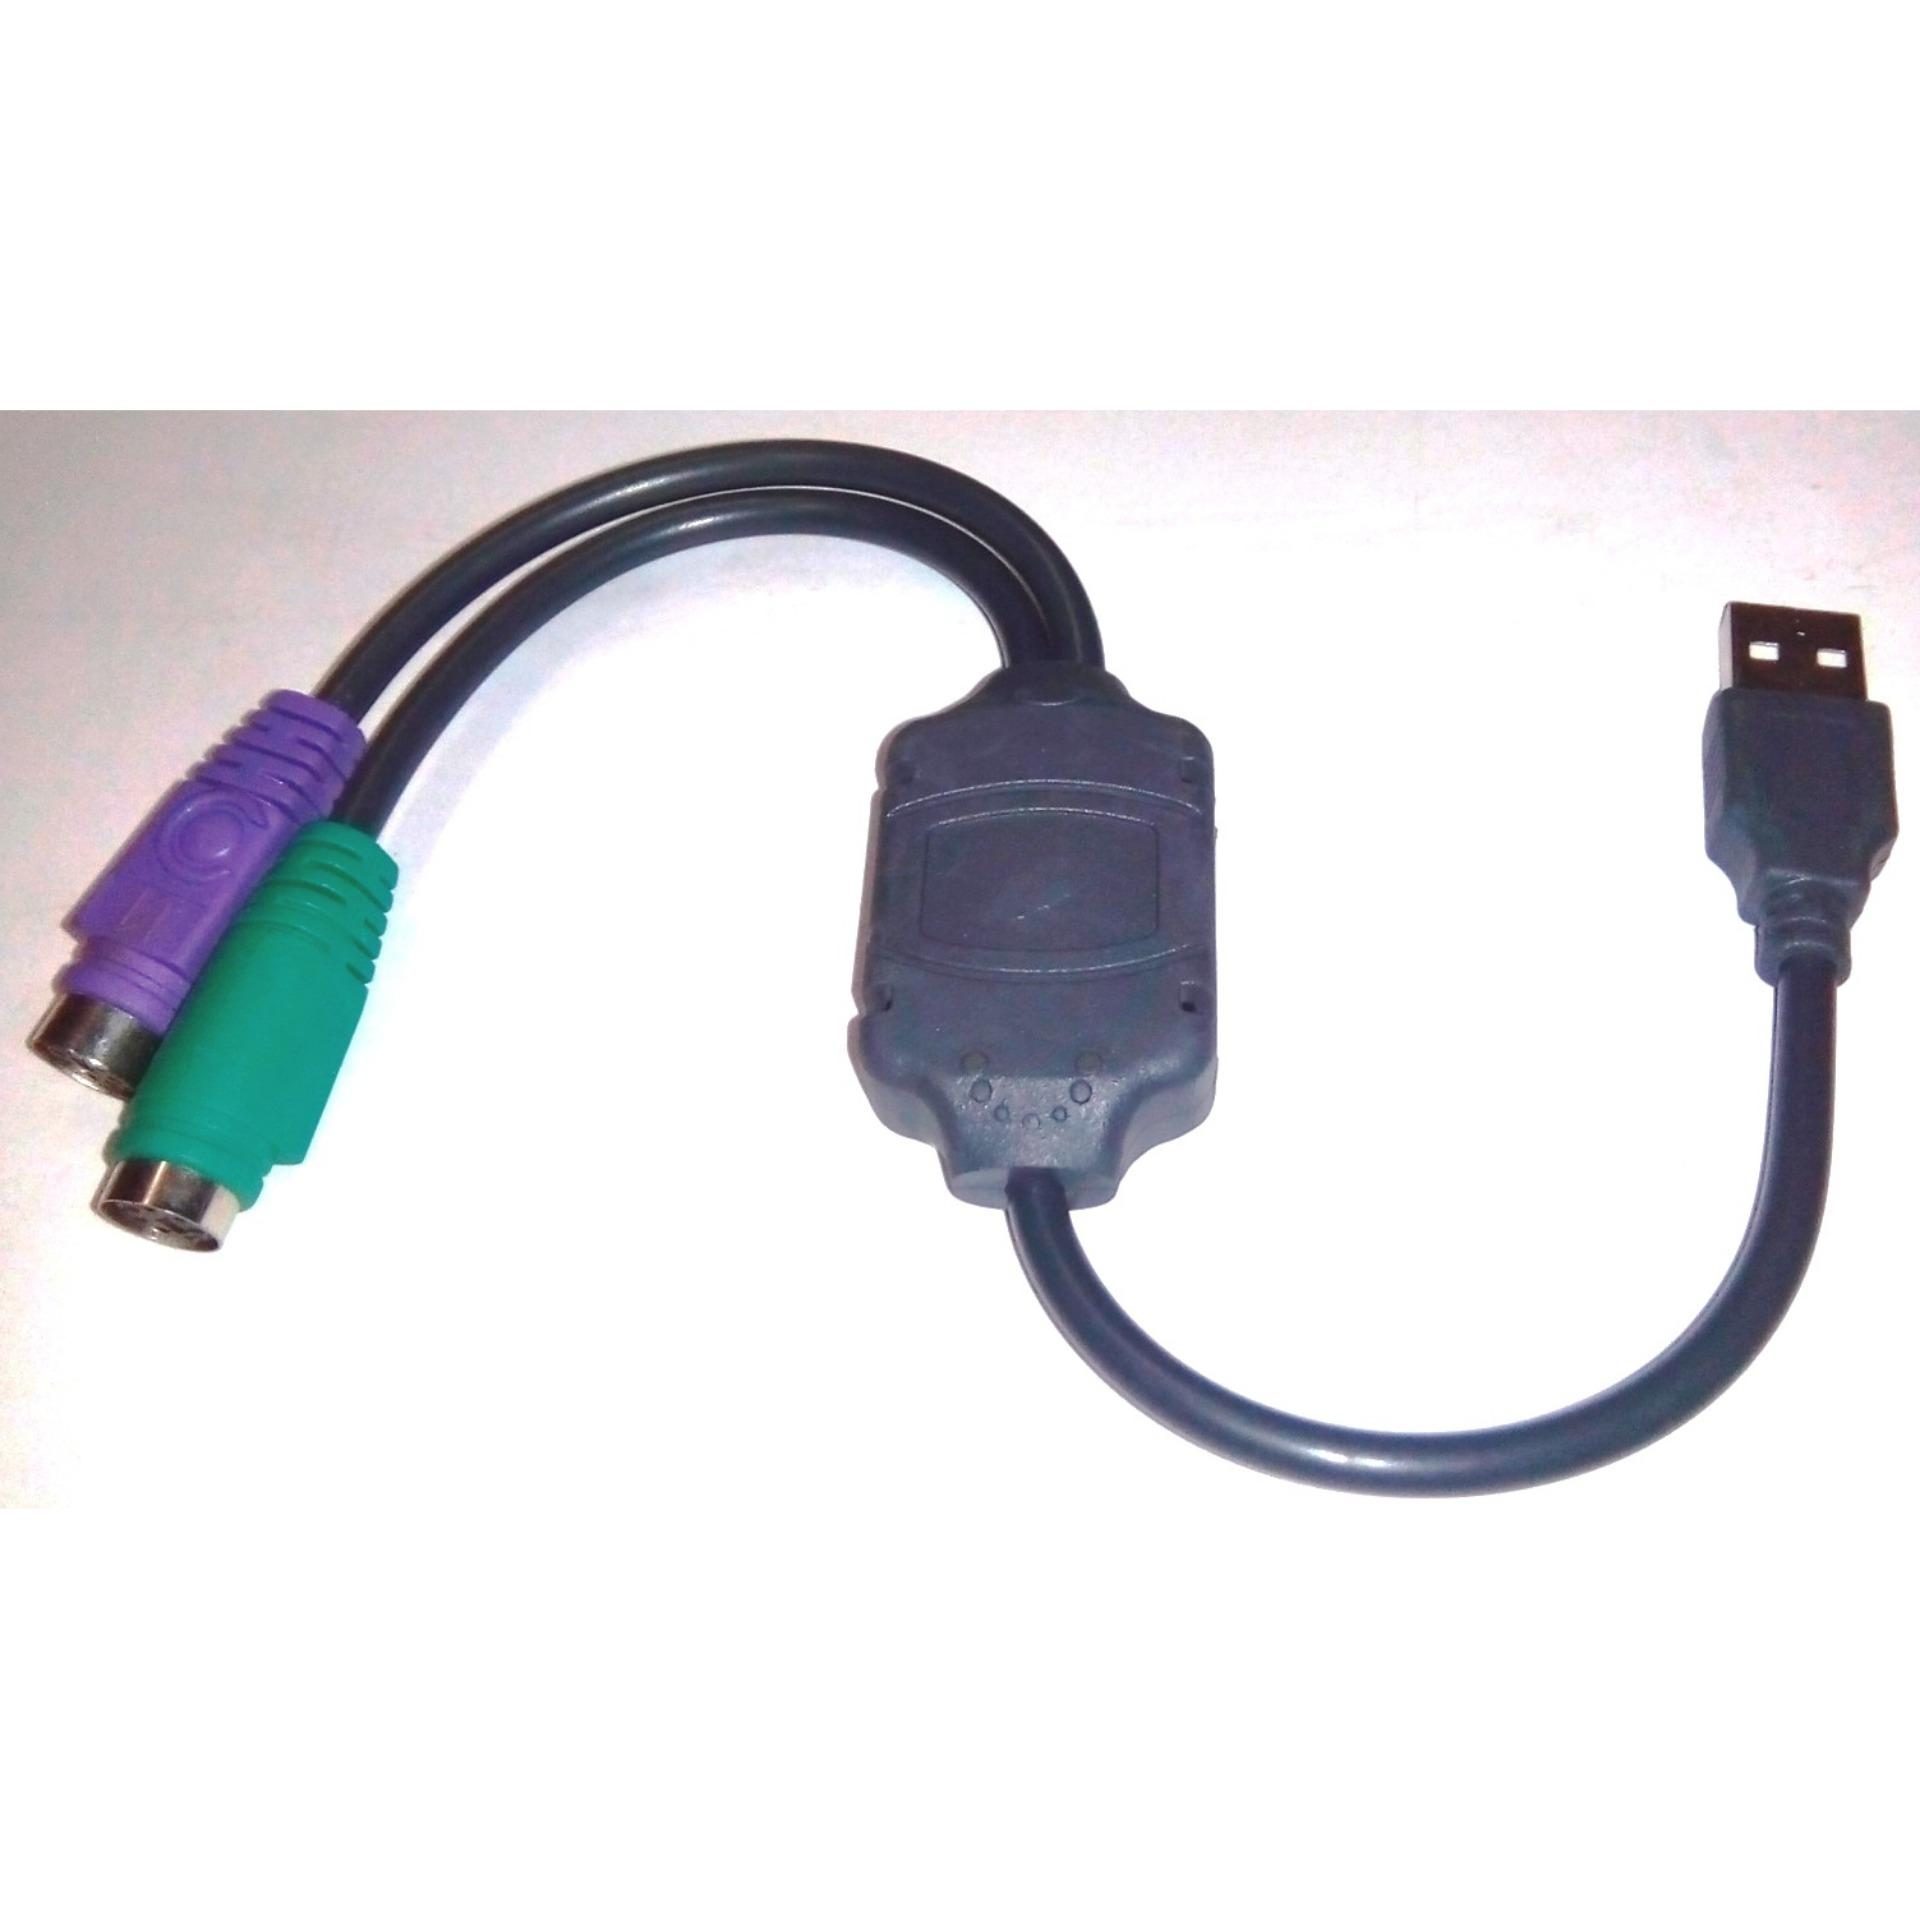 Philippines Usb To Ps2 Cable Adapter Converter Use For Keyboard Mouse